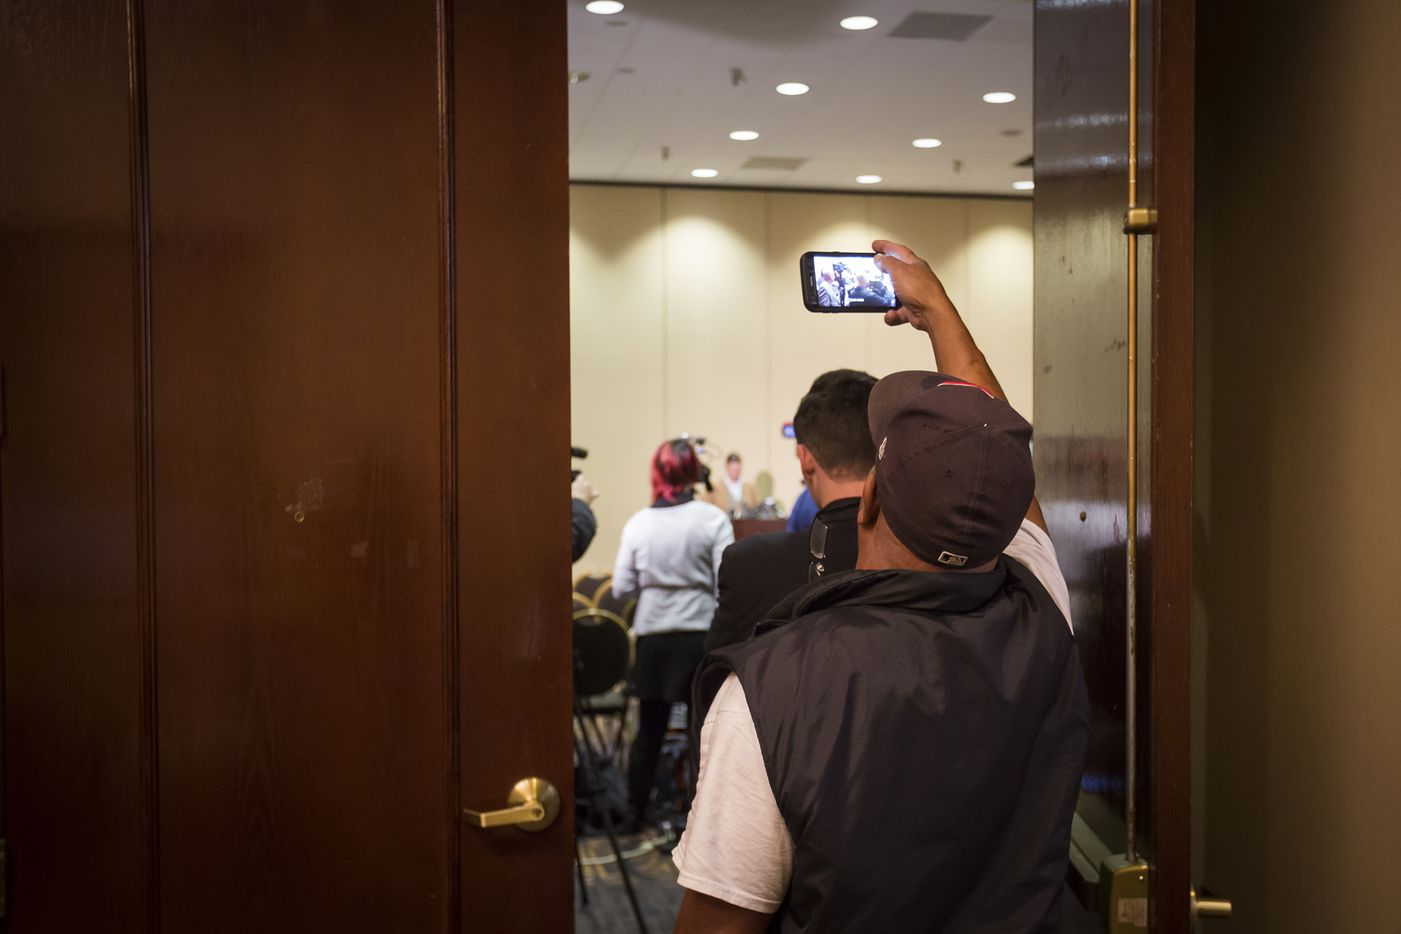 A man passing in the hallway takes a photo through the doorway as Richard Spencer addresses the media.